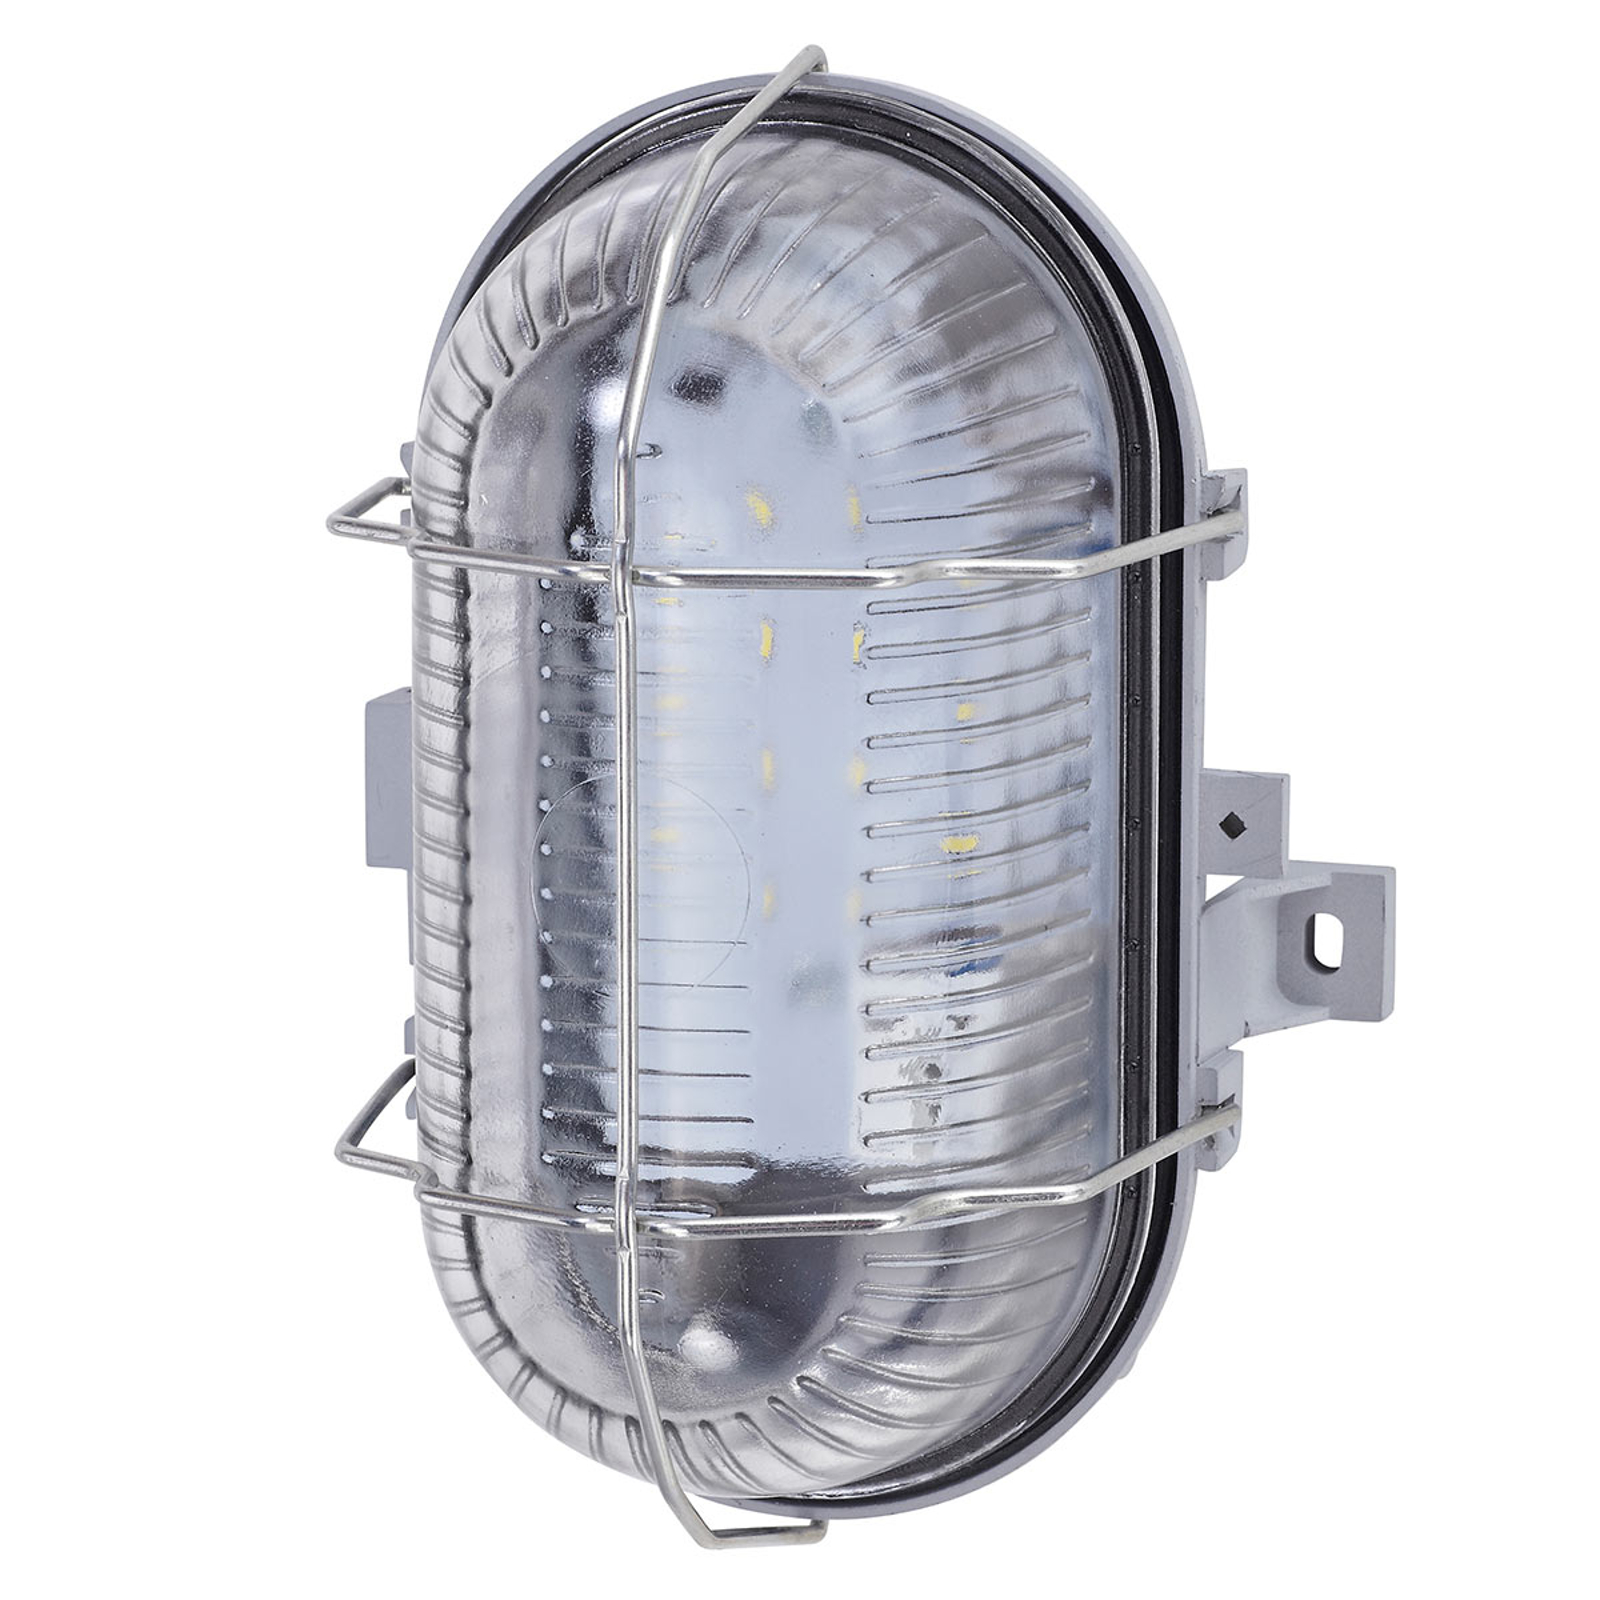 Impact-resistant Pesch 8 LED wall light IP44_6022402_1